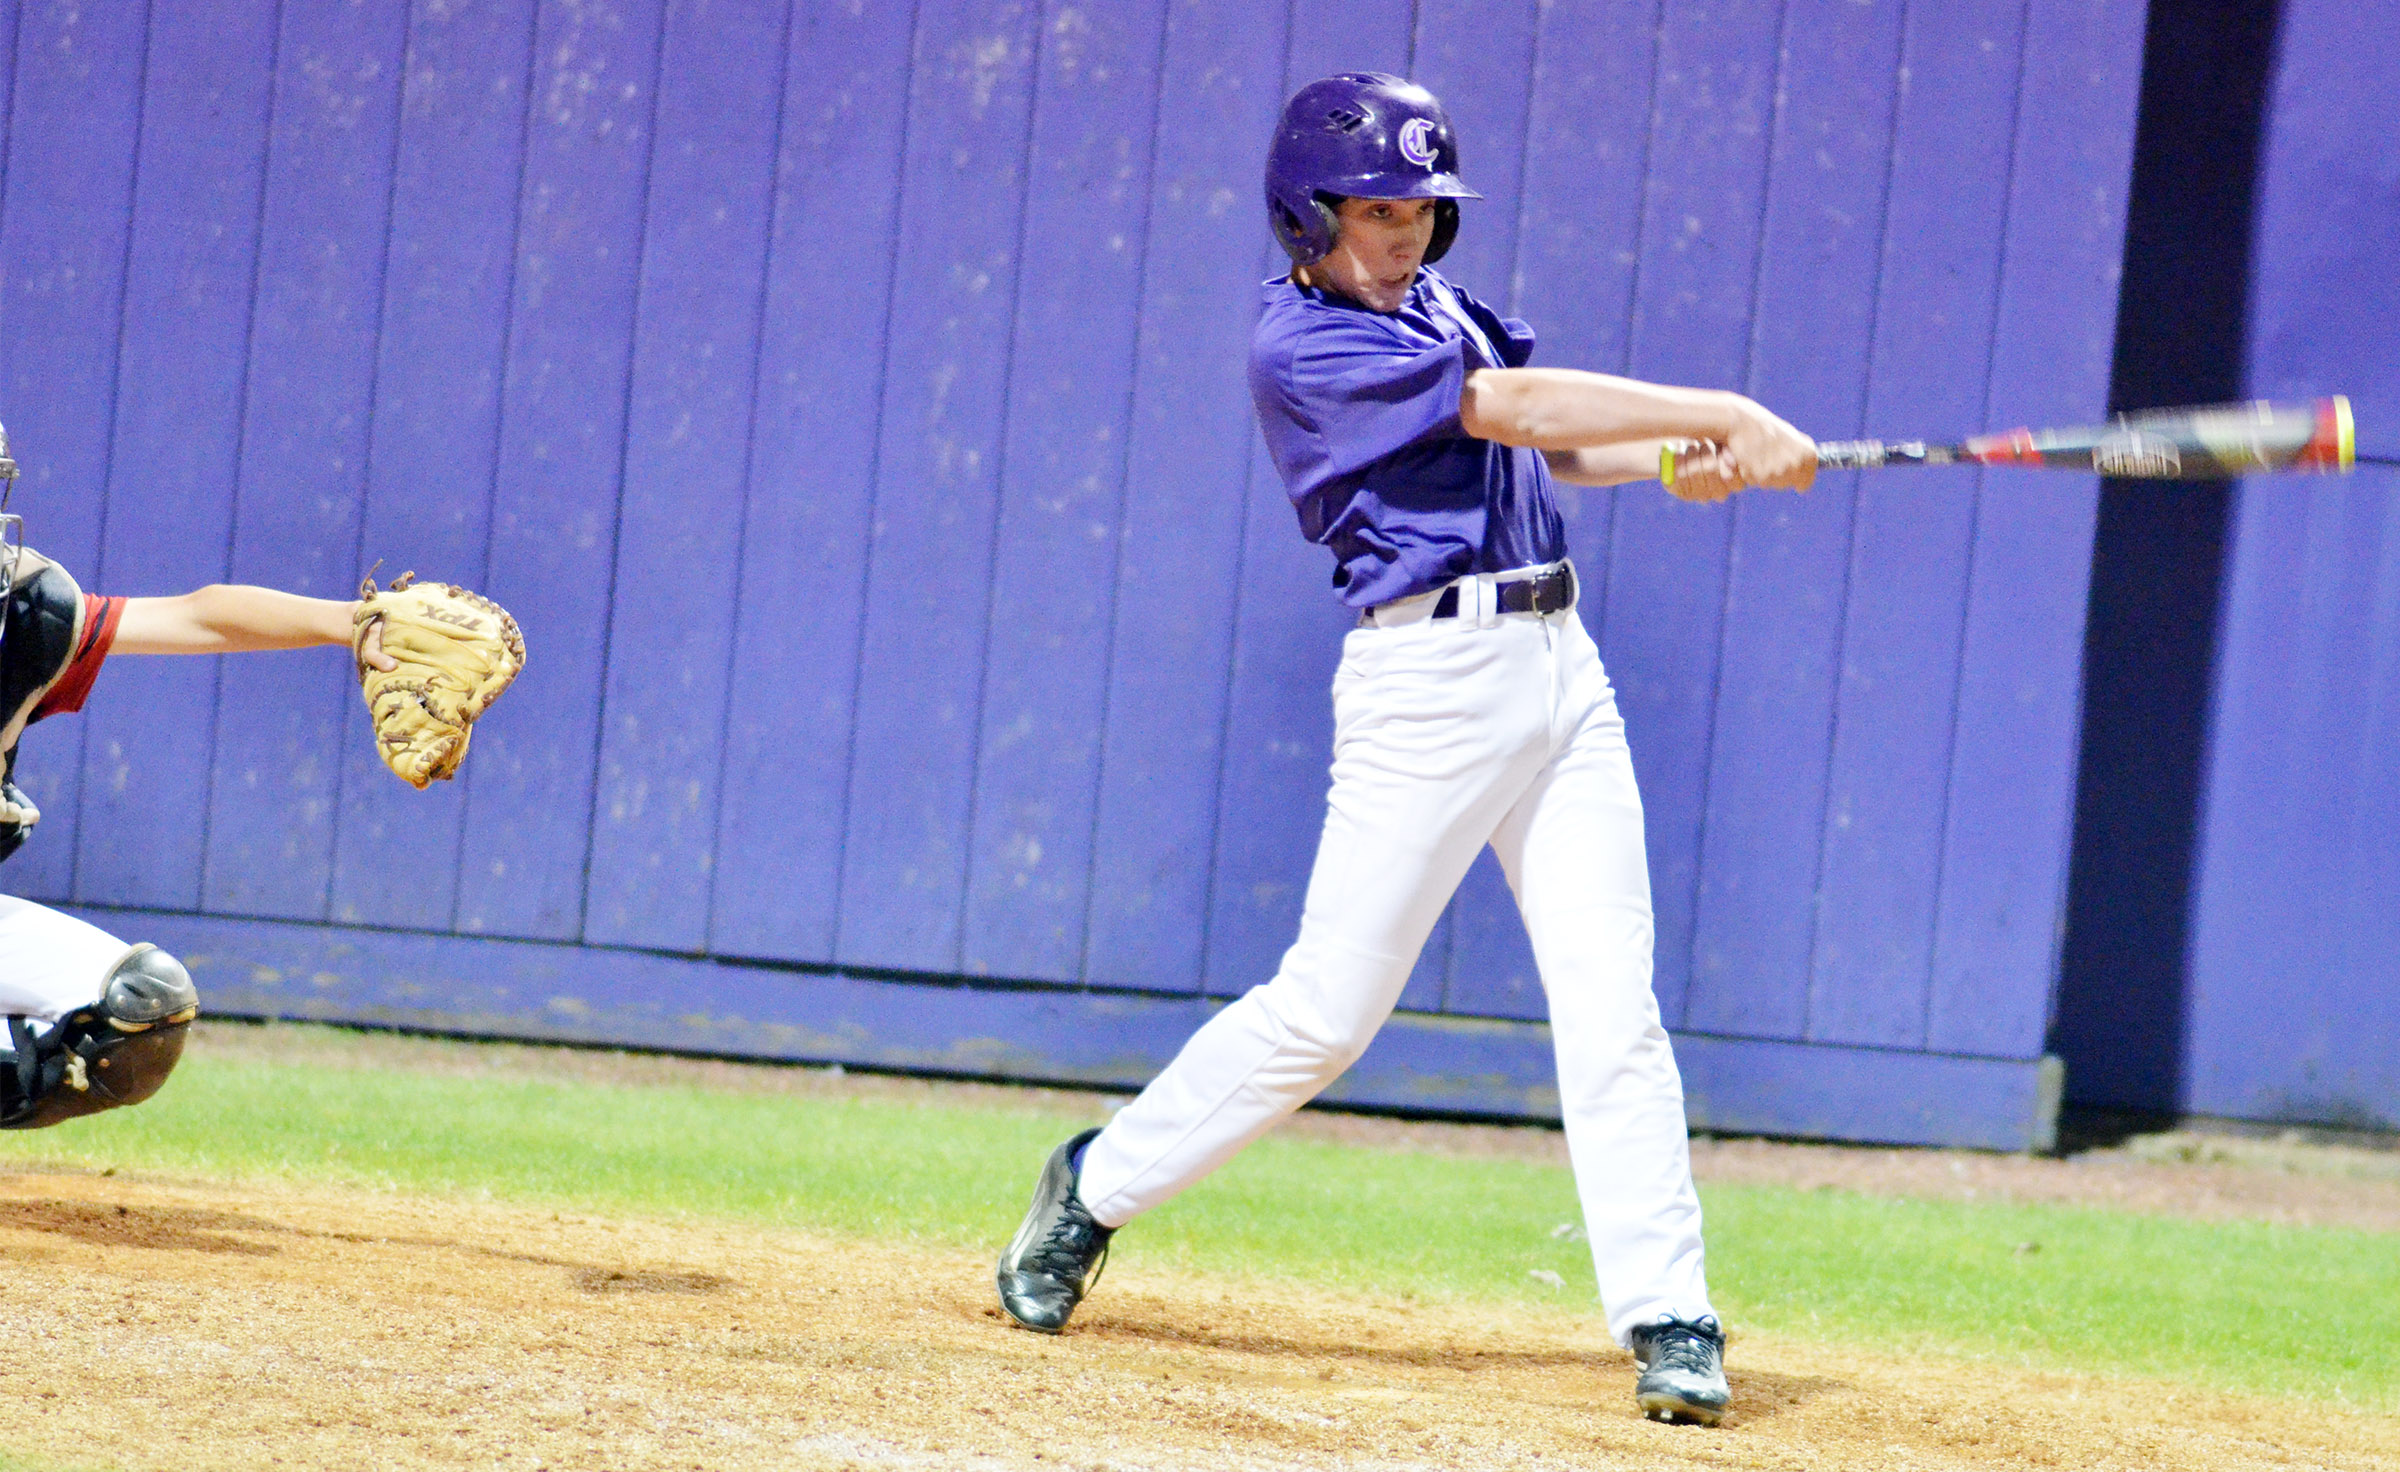 CMS seventh-grader Peyton Dabney gets a hit to win the game for his team.